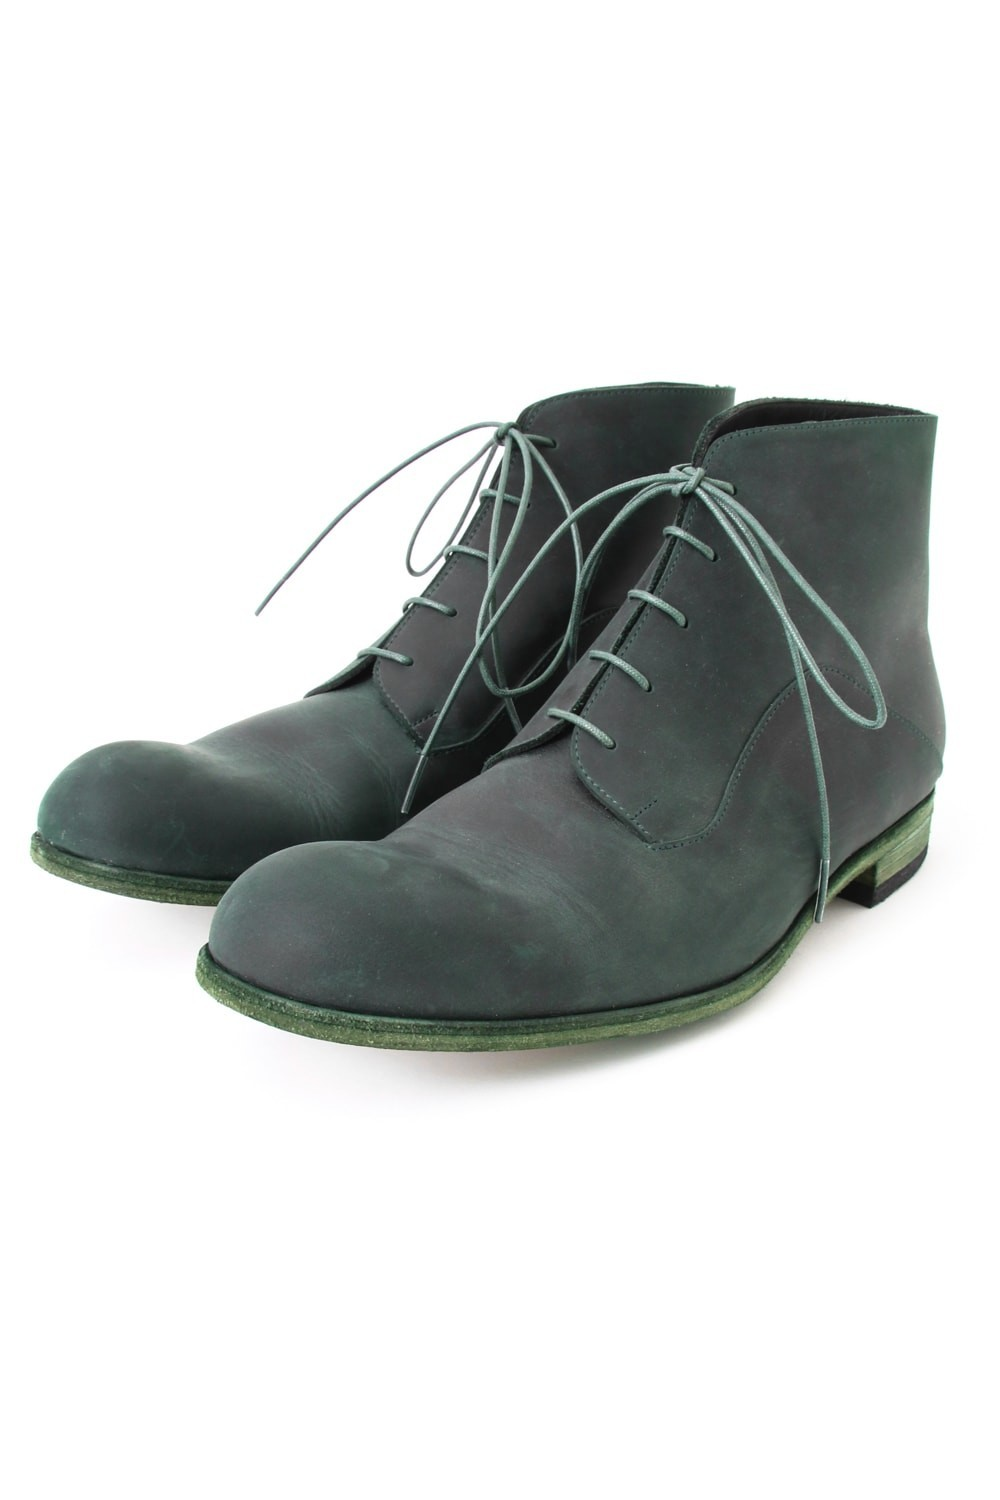 OX Derby Boots - Over Kip Nubuck